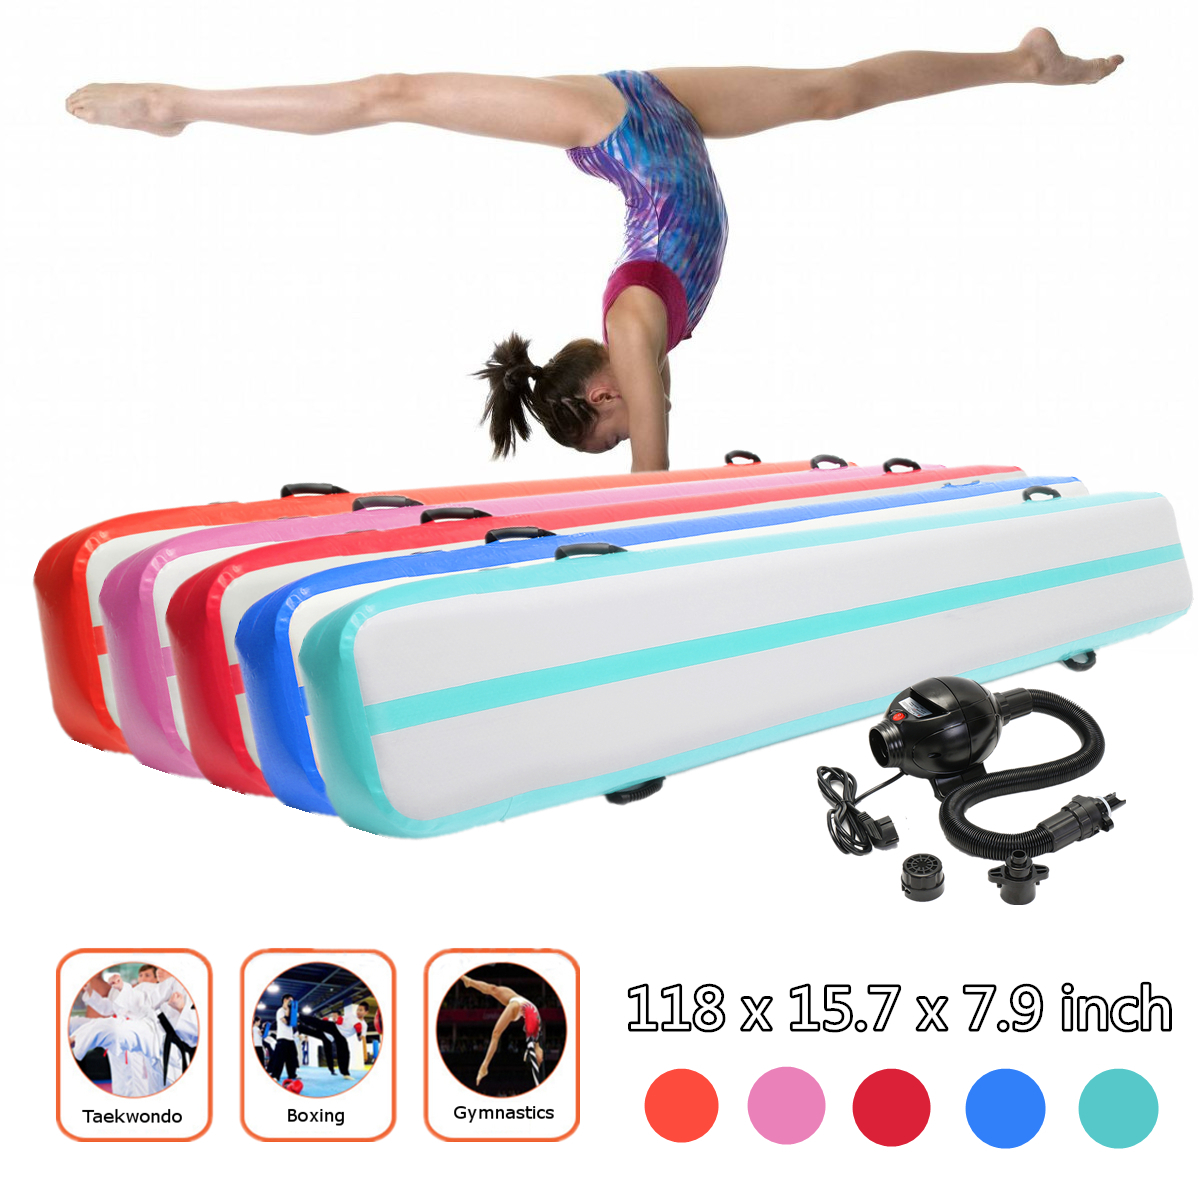 Hot 300*40*20cm Inflatable Air Track Tumbling Floor Gymnastics Practice Training Pad Gym Mat Airtrack Olympics Hot 300*40*20cm Inflatable Air Track Tumbling Floor Gymnastics Practice Training Pad Gym Mat Airtrack Olympics